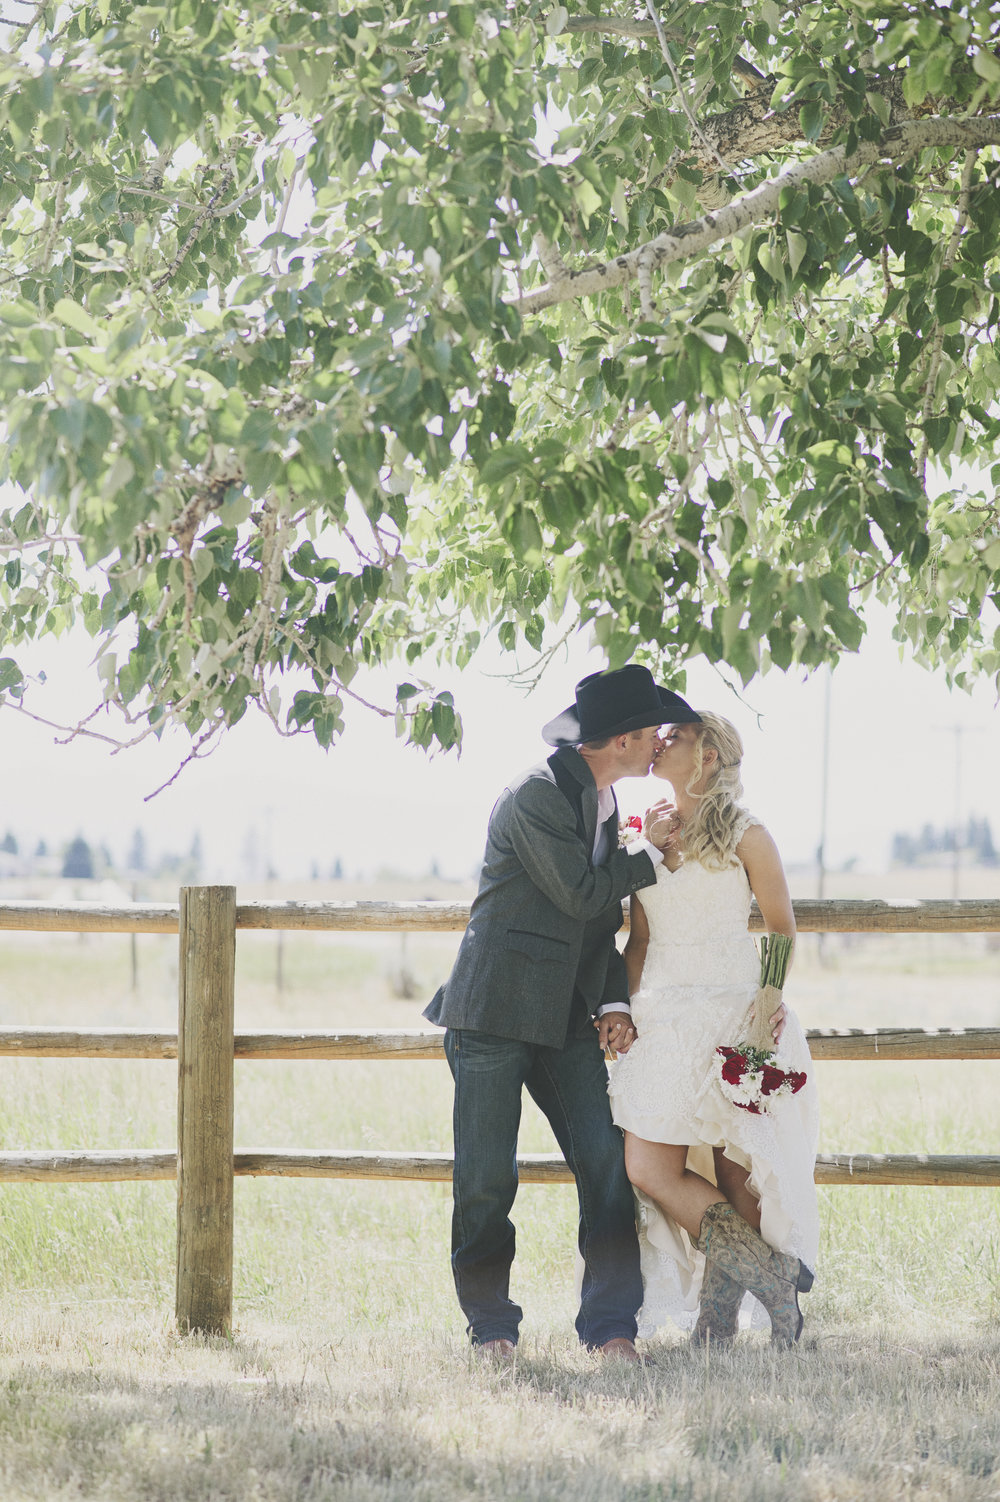 Erica Lind + Jeff Heim Wedding_Rustic Wedding_Montana Wedding_Kelsey Lane Photography-3922-2 copy.jpg